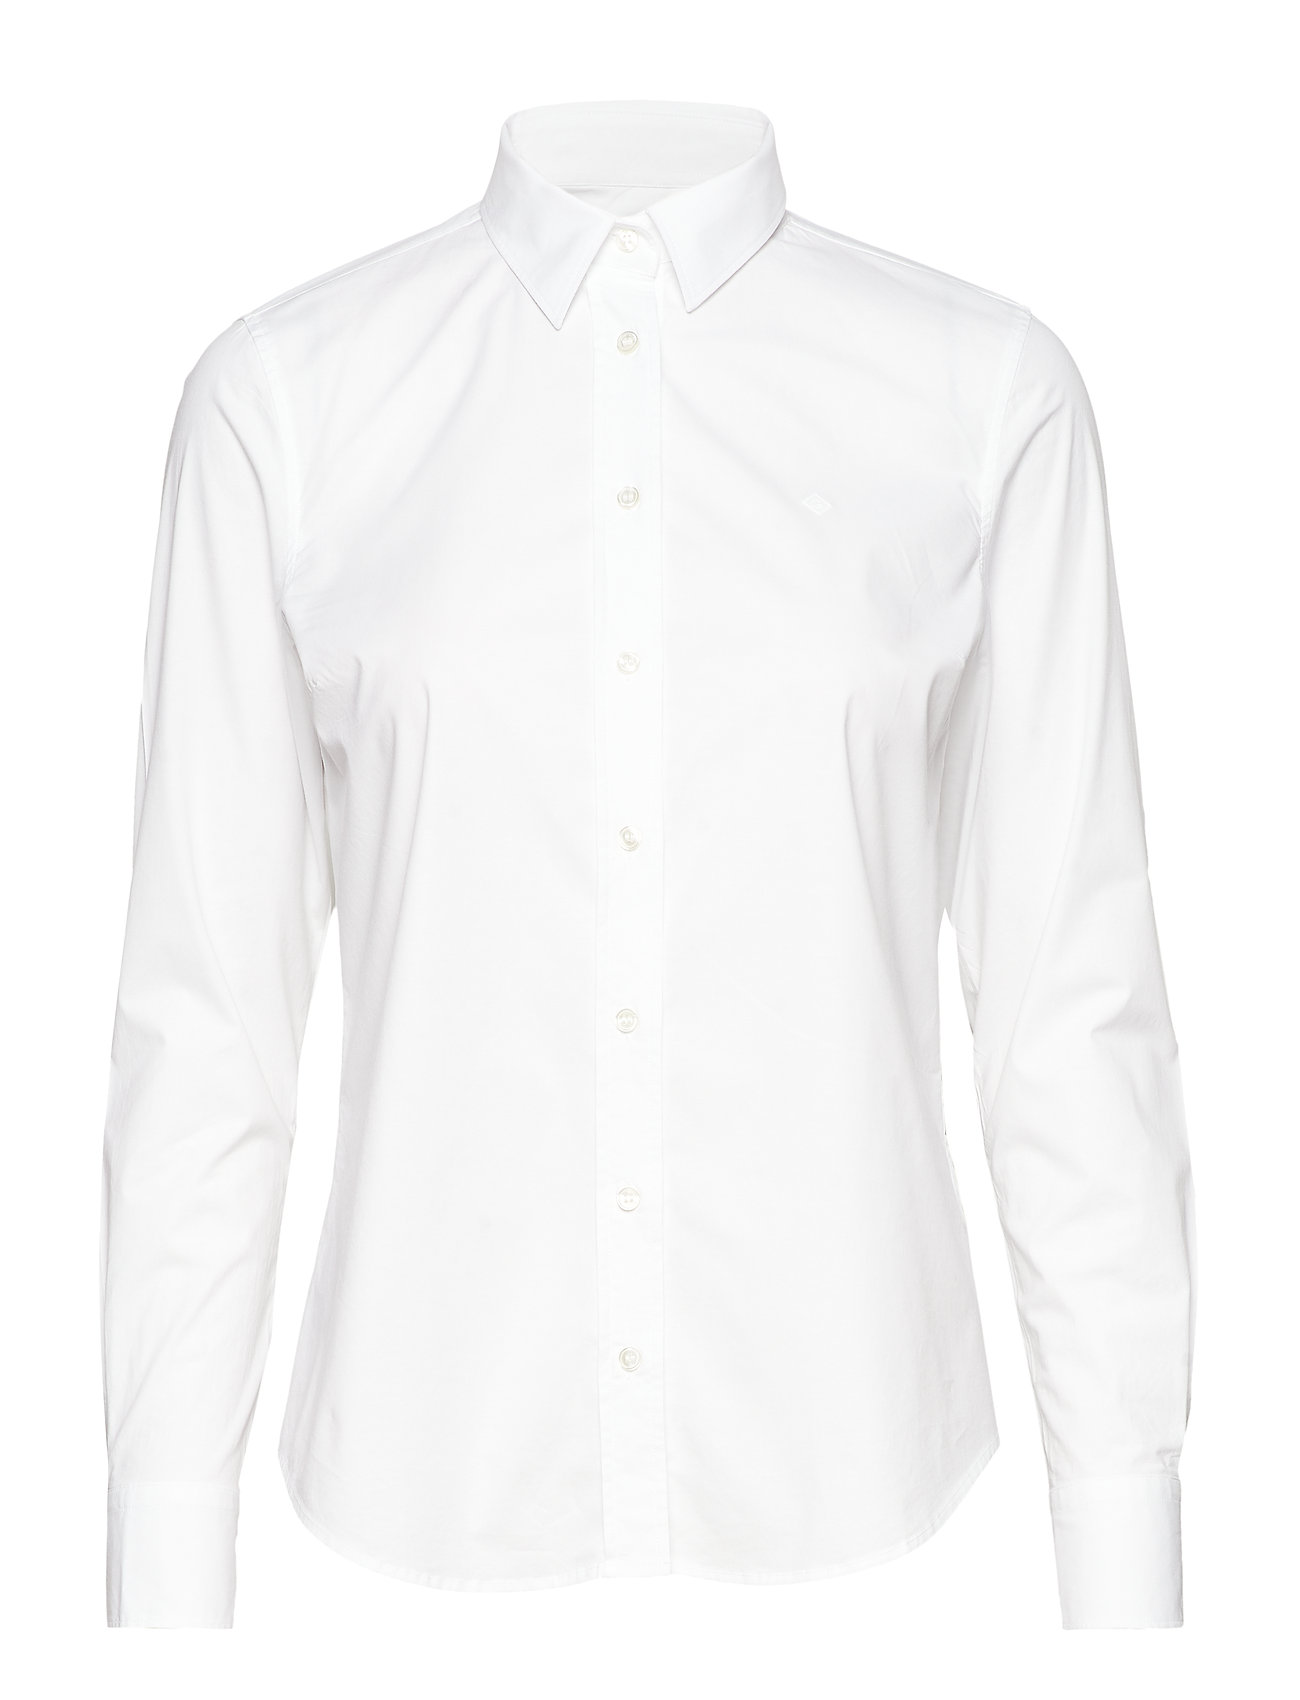 GANT SOLID STRETCH BROADCLOTH SHIRT - WHITE